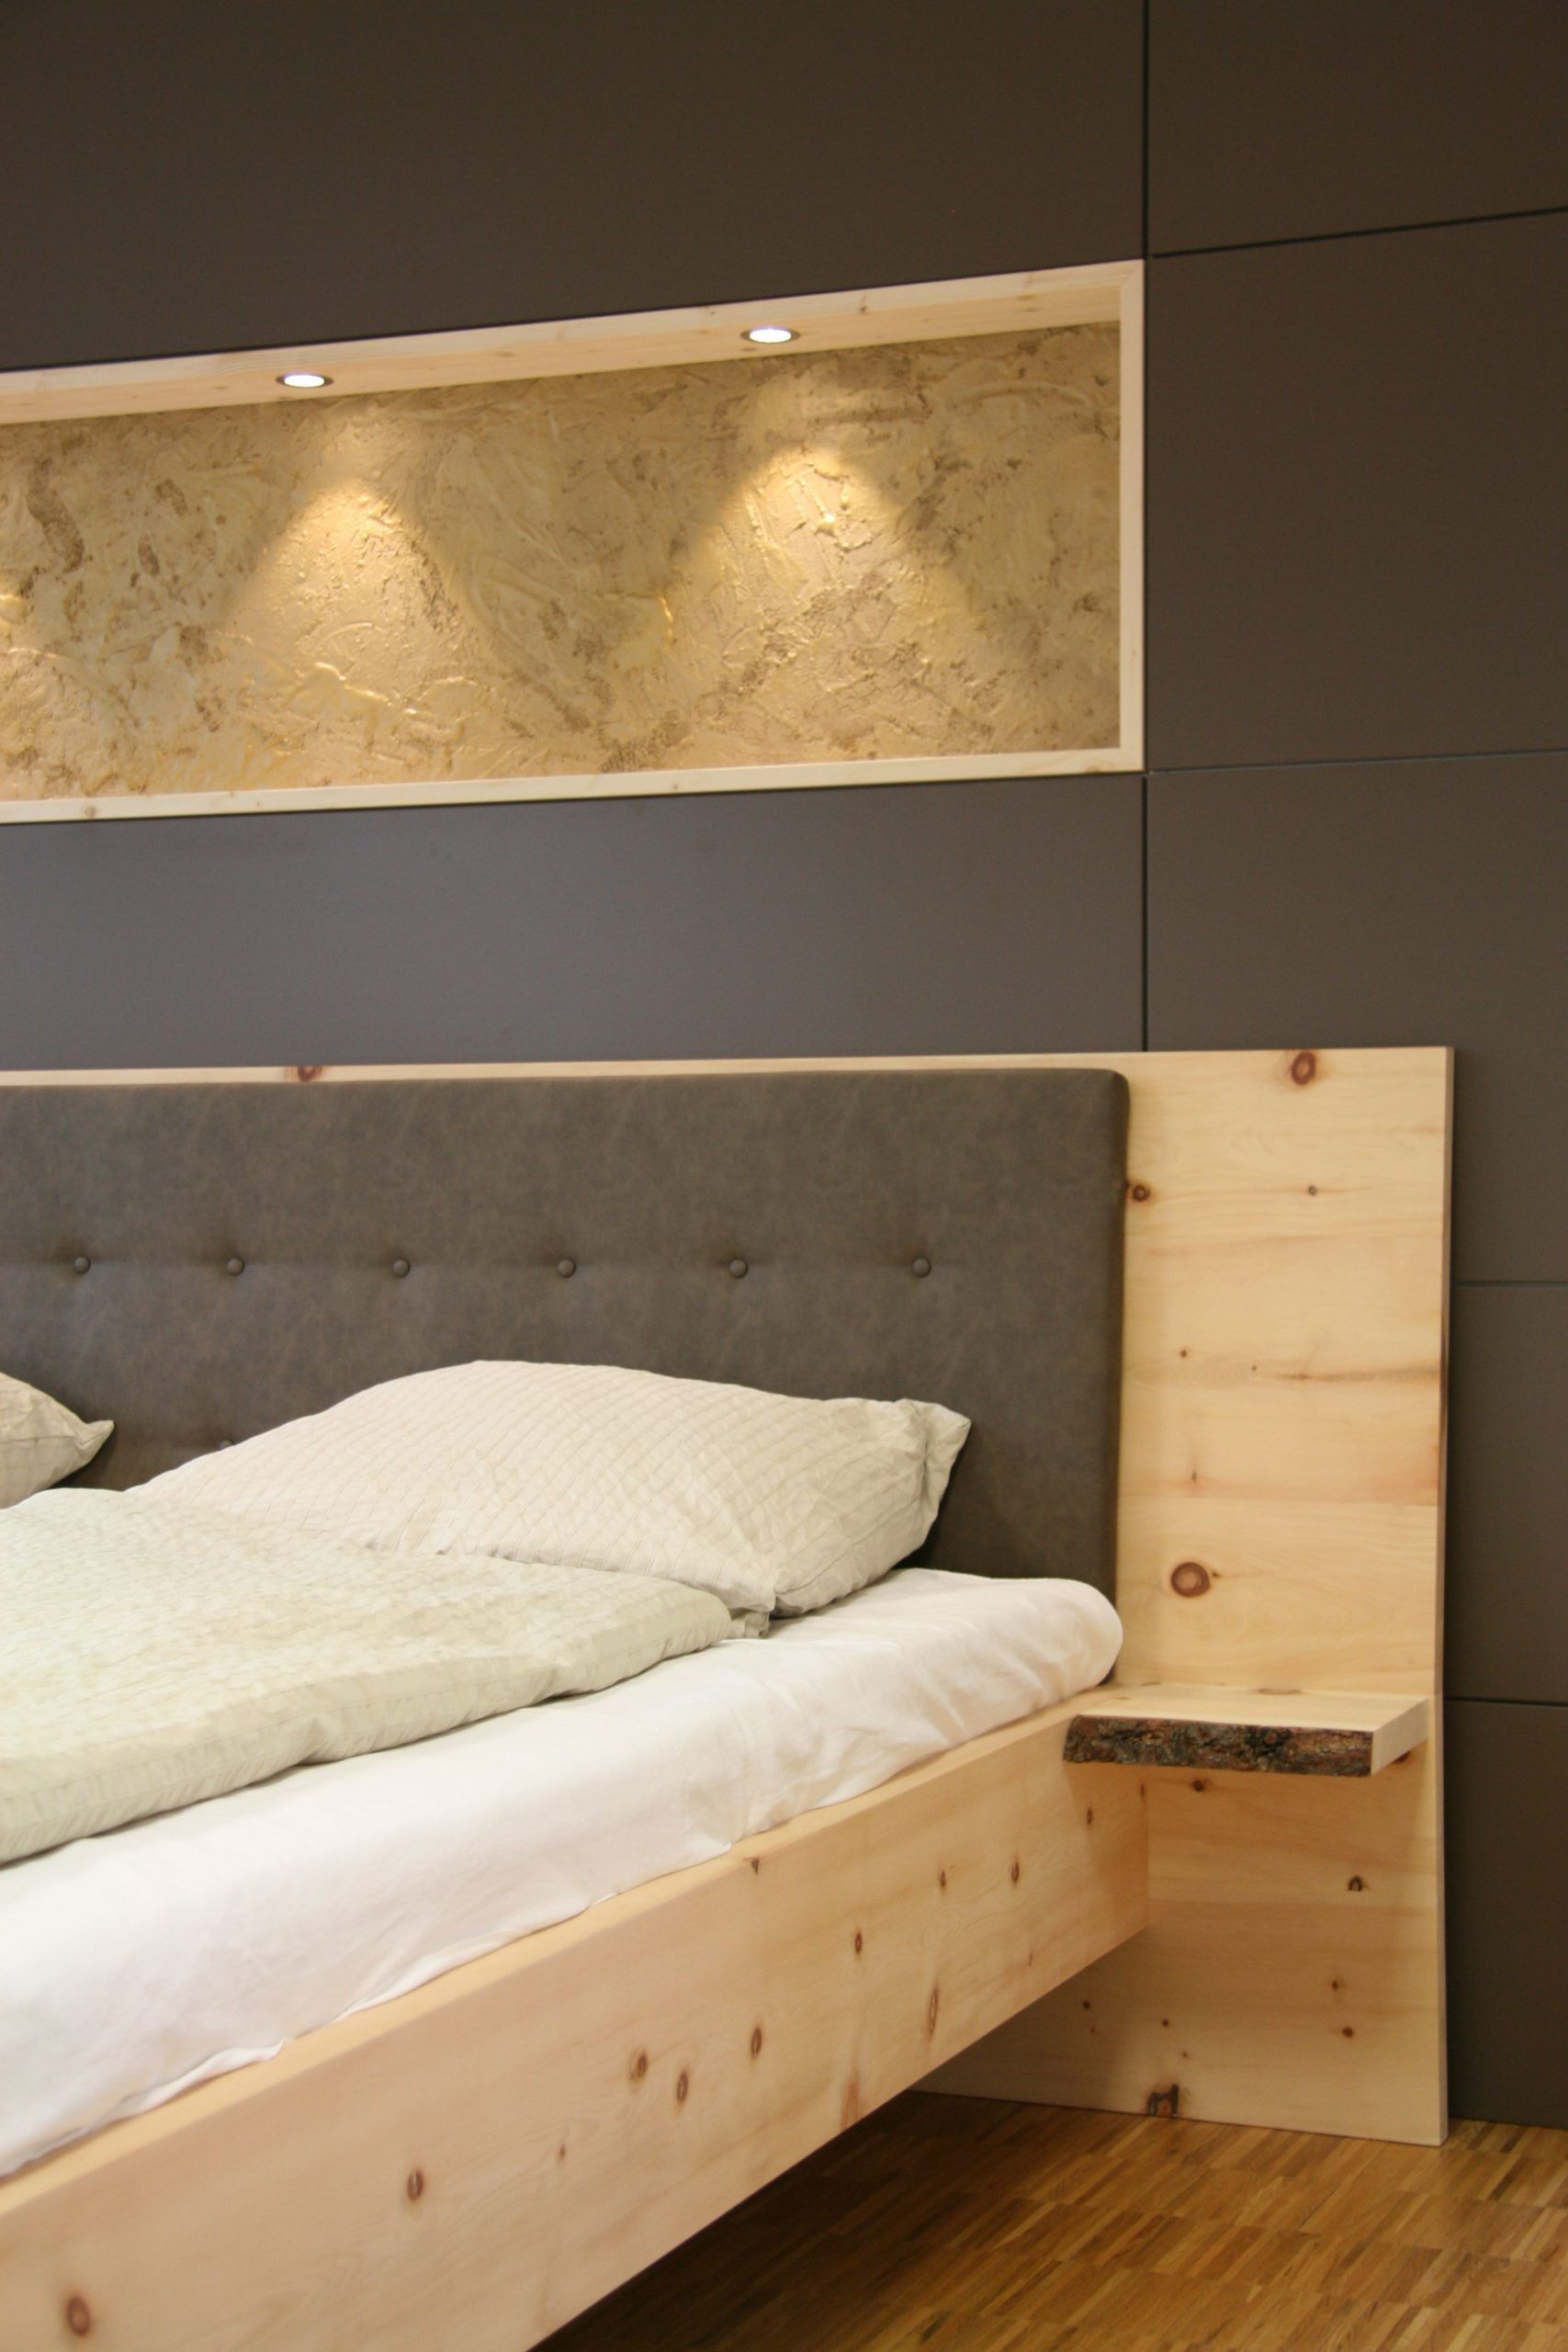 Solid Wood Bed Made Of Stone Pine Special Features Bedside Table With Tree Edge Bed Bedside Edge Featur In 2020 Bedroom Bed Design Wooden Bed How To Make Bed